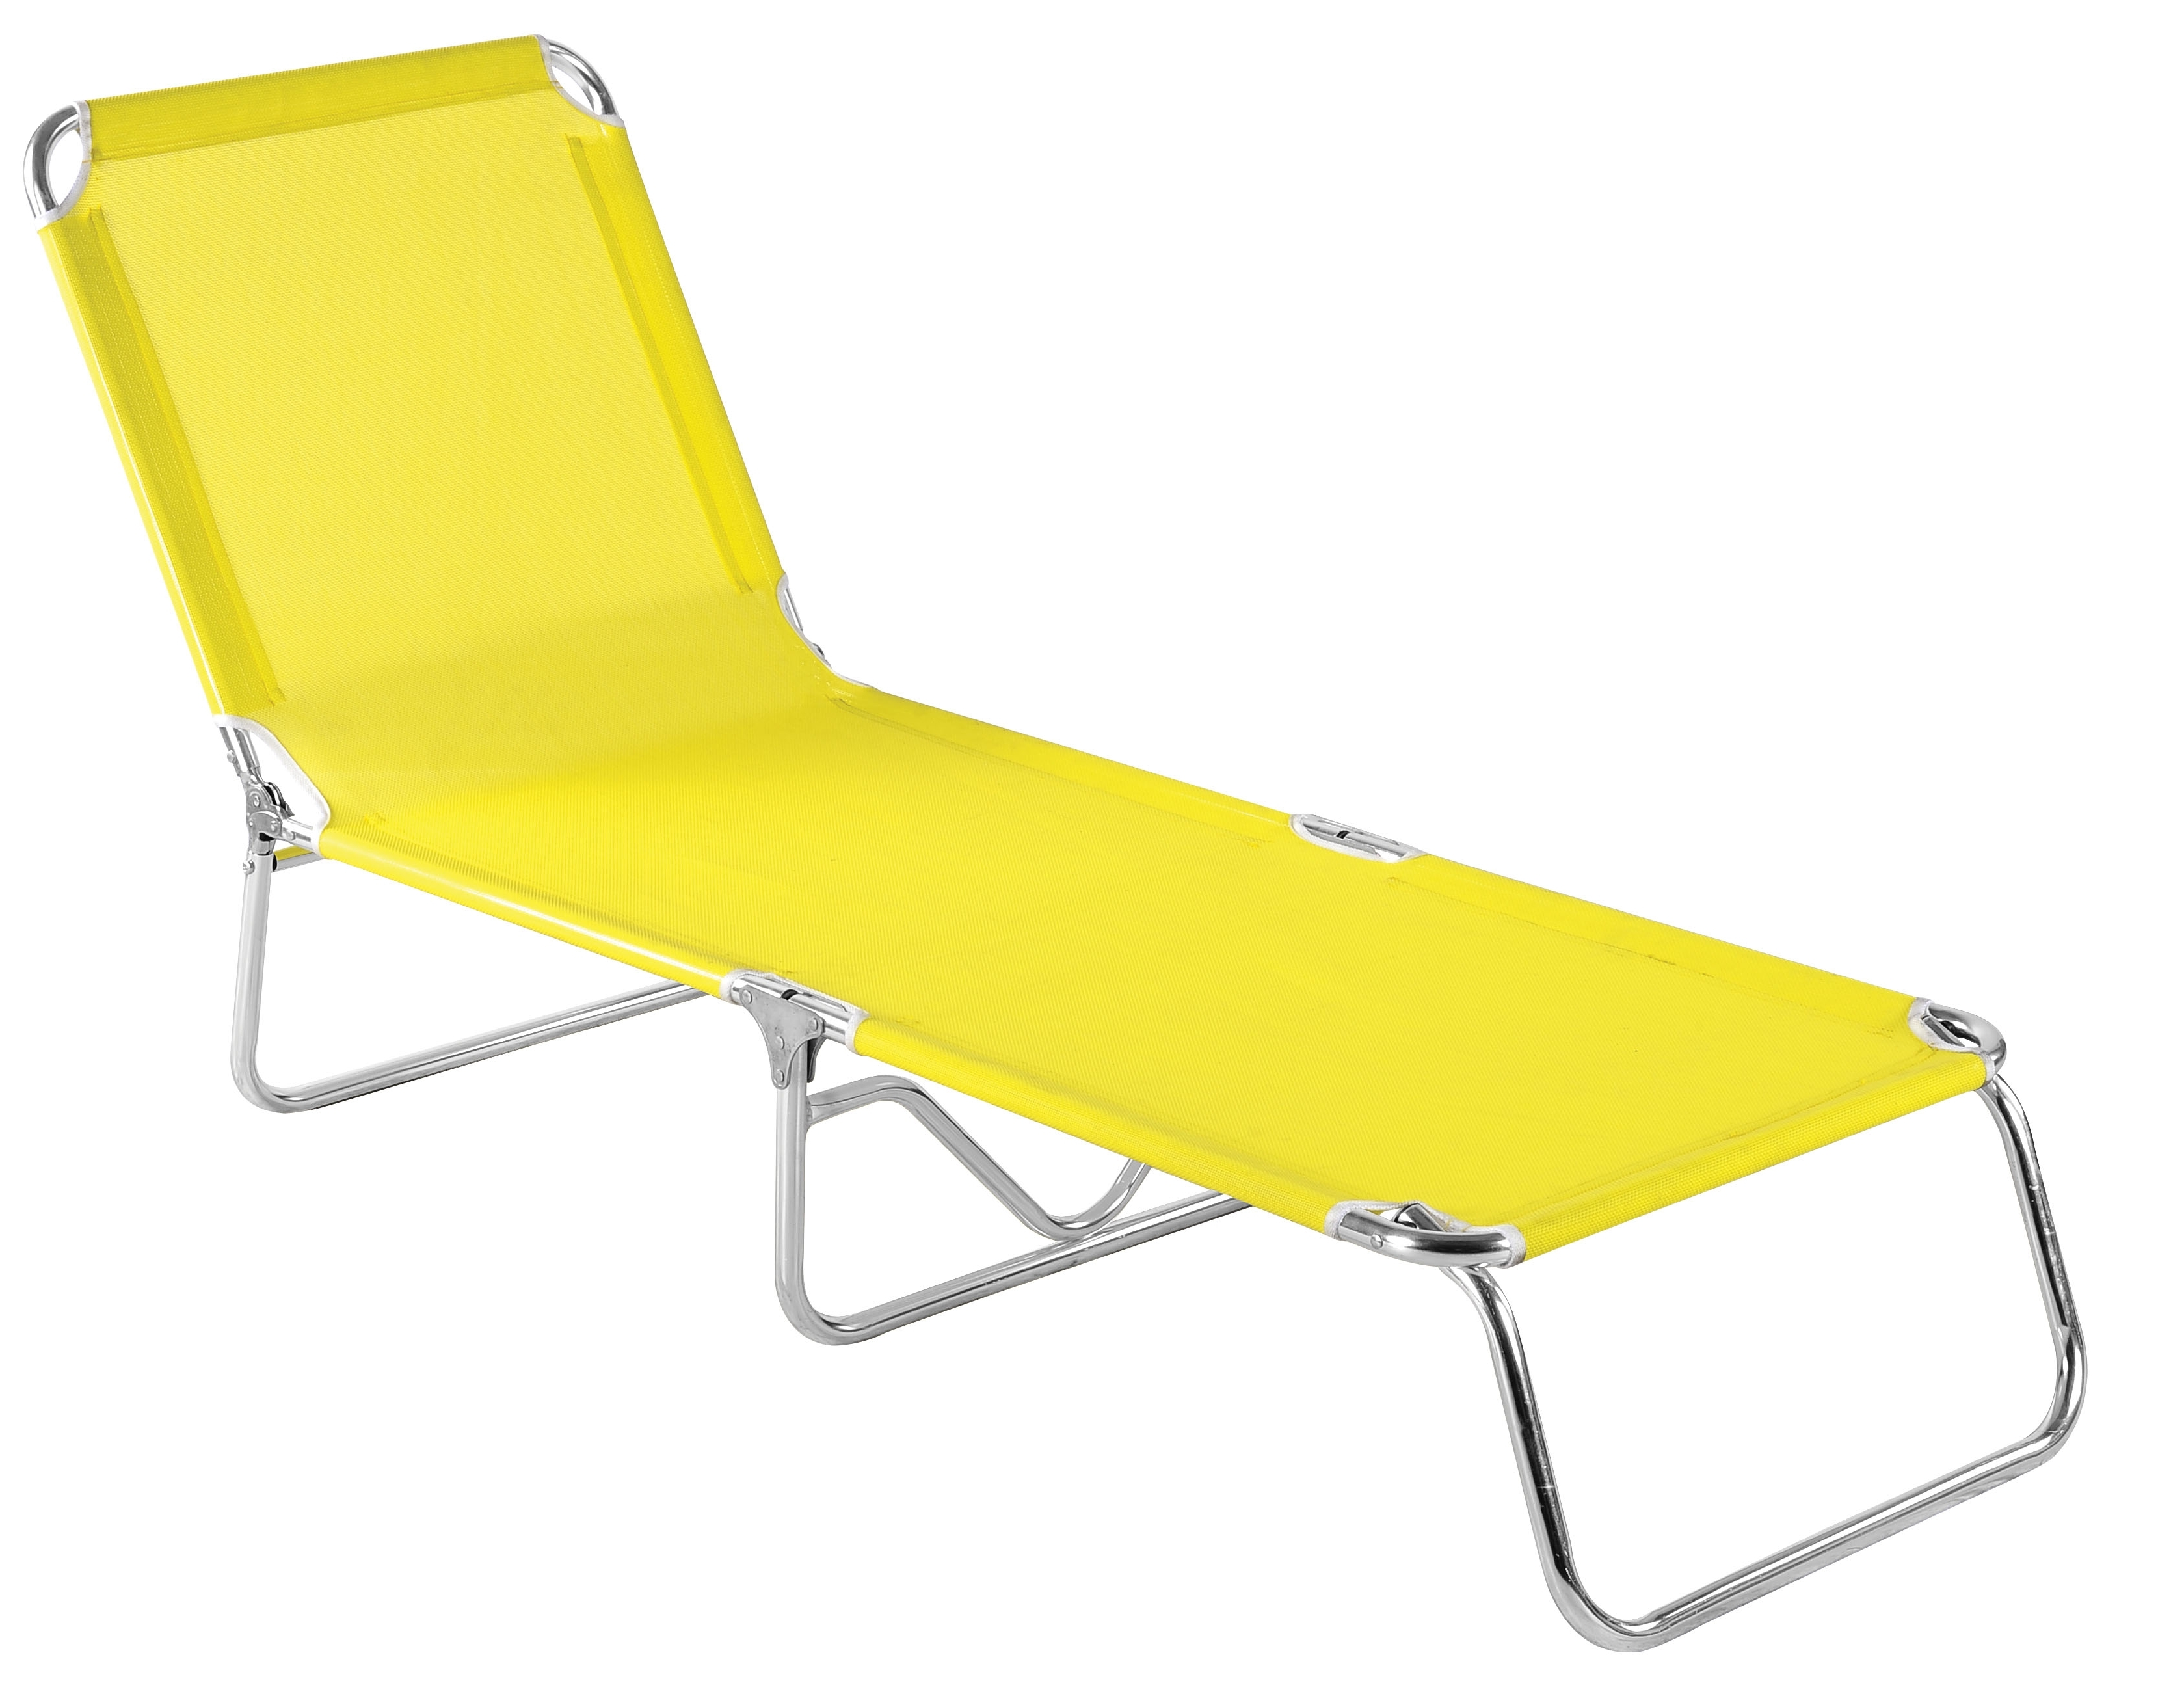 Popular New Chaise Lounge Beach Chair (39 Photos) (View 3 of 15)